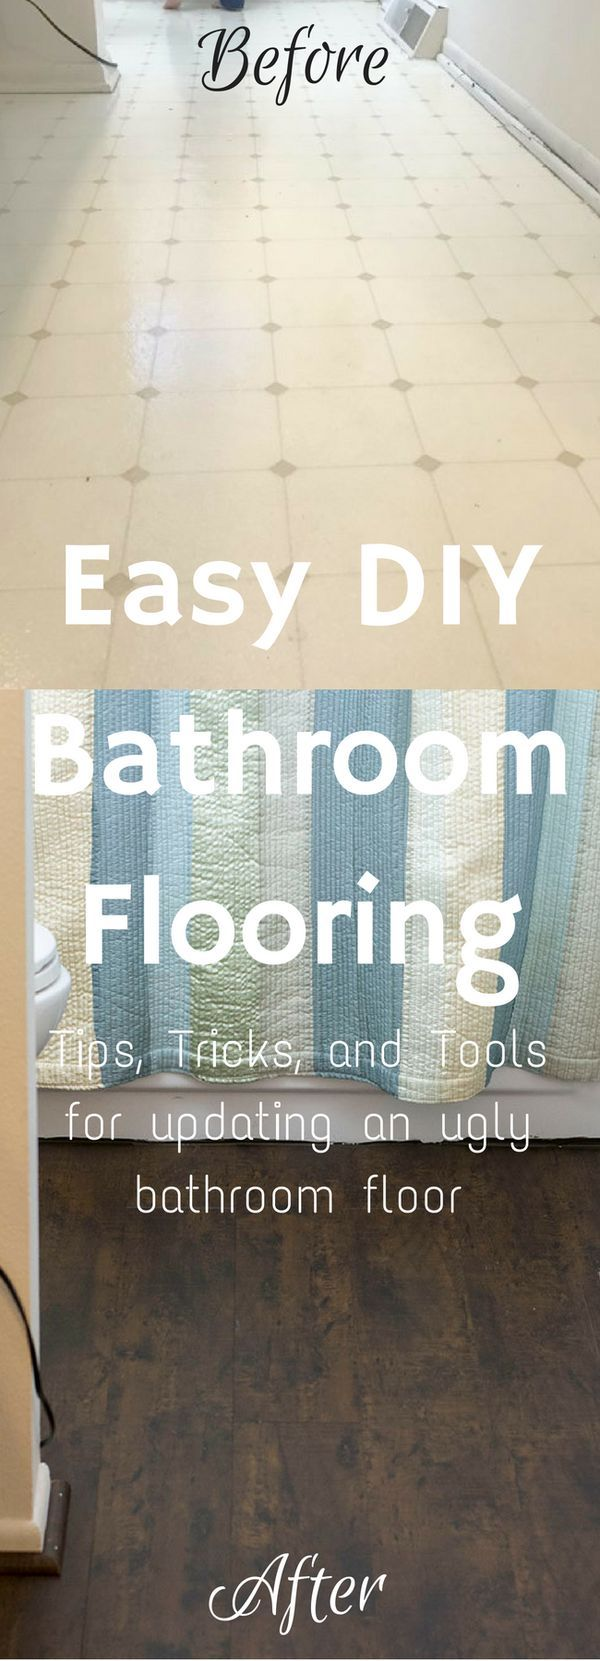 Bathroom Floor Ideas For Small Bathrooms best 25+ cheap bathroom flooring ideas on pinterest | budget